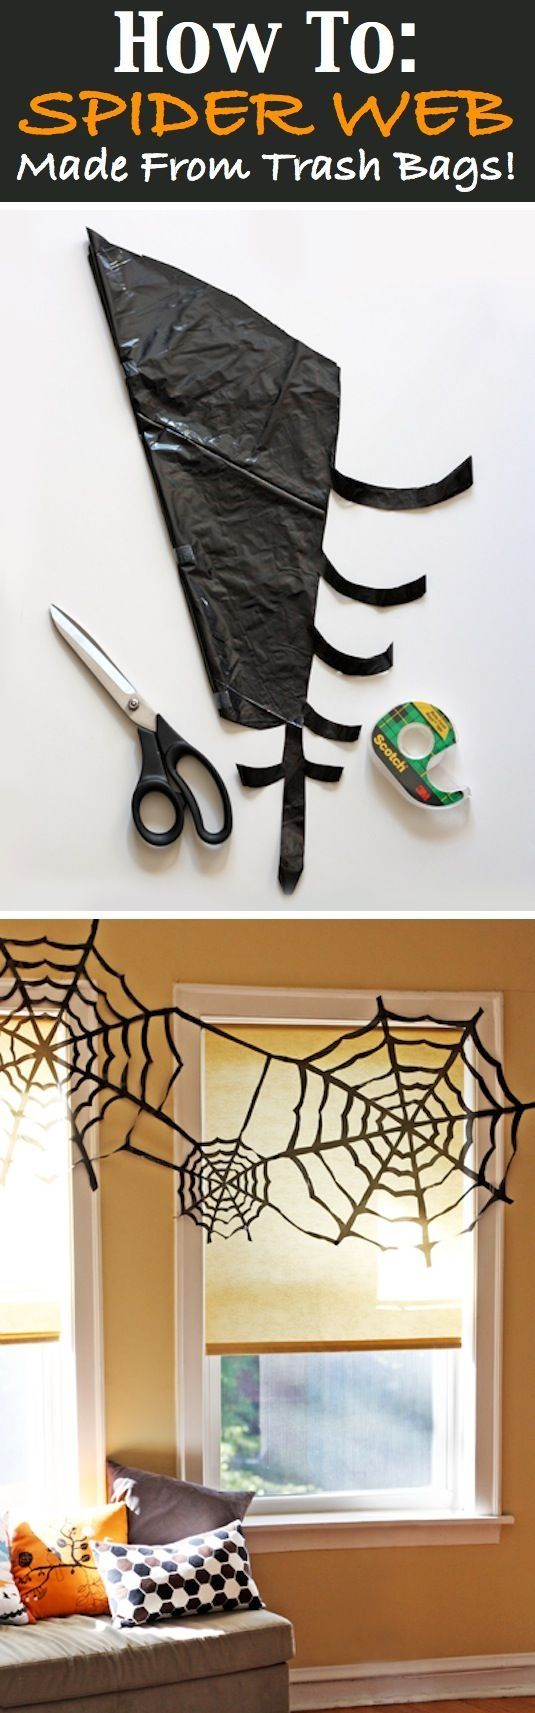 Easy homemade halloween decorations - 16 Easy But Awesome Homemade Halloween Decorations By Echkbet